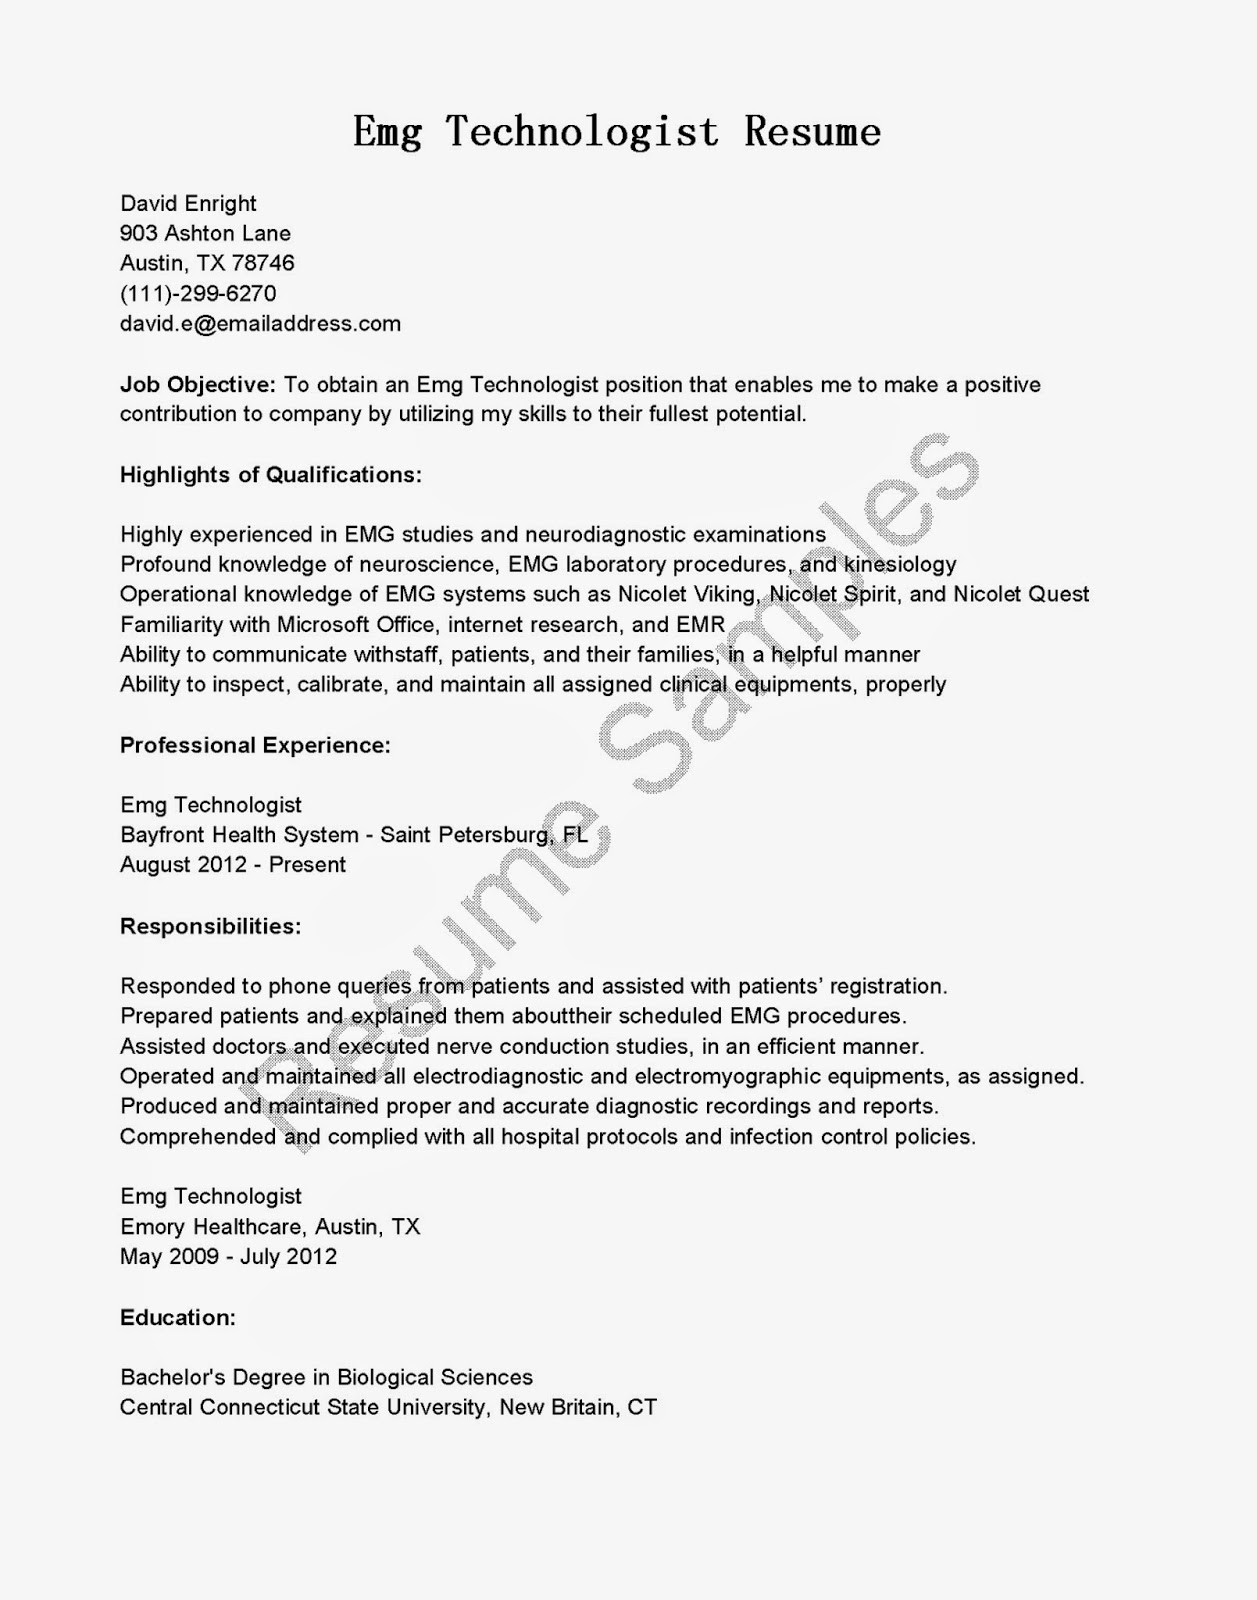 resume samples emg technologist resume sample